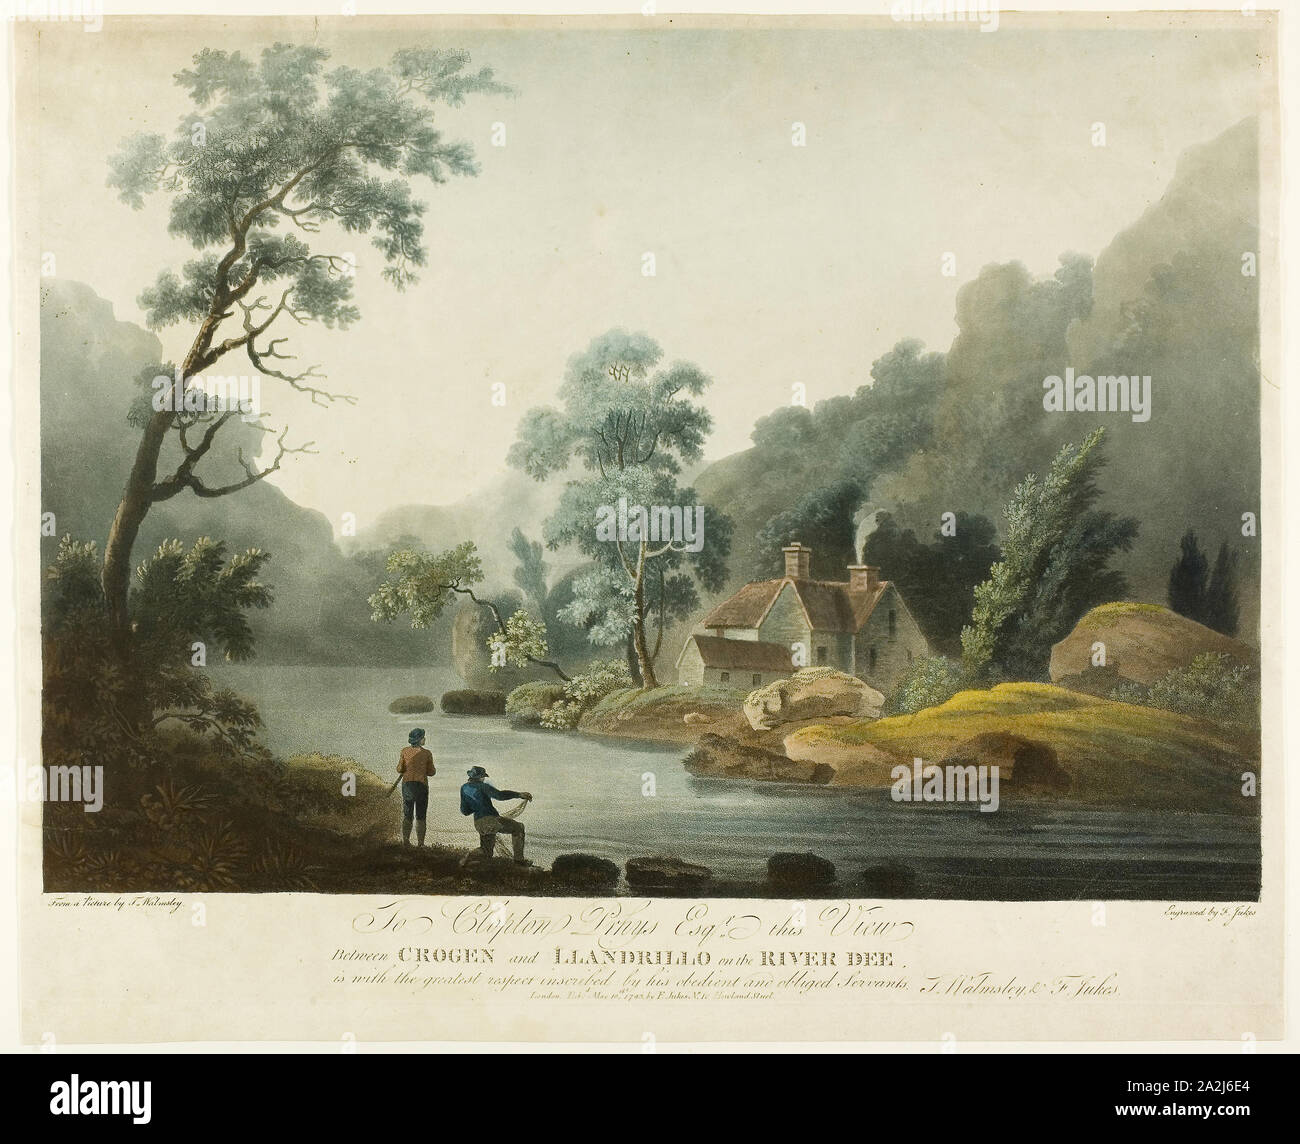 Between Crogen & Llandrillo on the R. Dee, published 1793, Francis Jukes, English, 1745-1812, England, Color aquatint and etching on paper, Untitled, 1848/56, Fontayne & Porter, American, active 1848–1856, United States, Daguerreotype, 14 x 10.8 cm (plate), 15 x 12.1 x 1.5 cm (case), Untitled, 1839/60, 19th century, Unknown Place, Daguerreotype, 14 x 10.8 cm (plate), 15.3 x 12 x 1.9 cm (case), Untitled, 19th century, 19th century, Unknown Place, Albumen on porcelain, 14 x 10.8 cm (plate), 15.7 x 12.7 x 2.7 cm (case Stock Photo